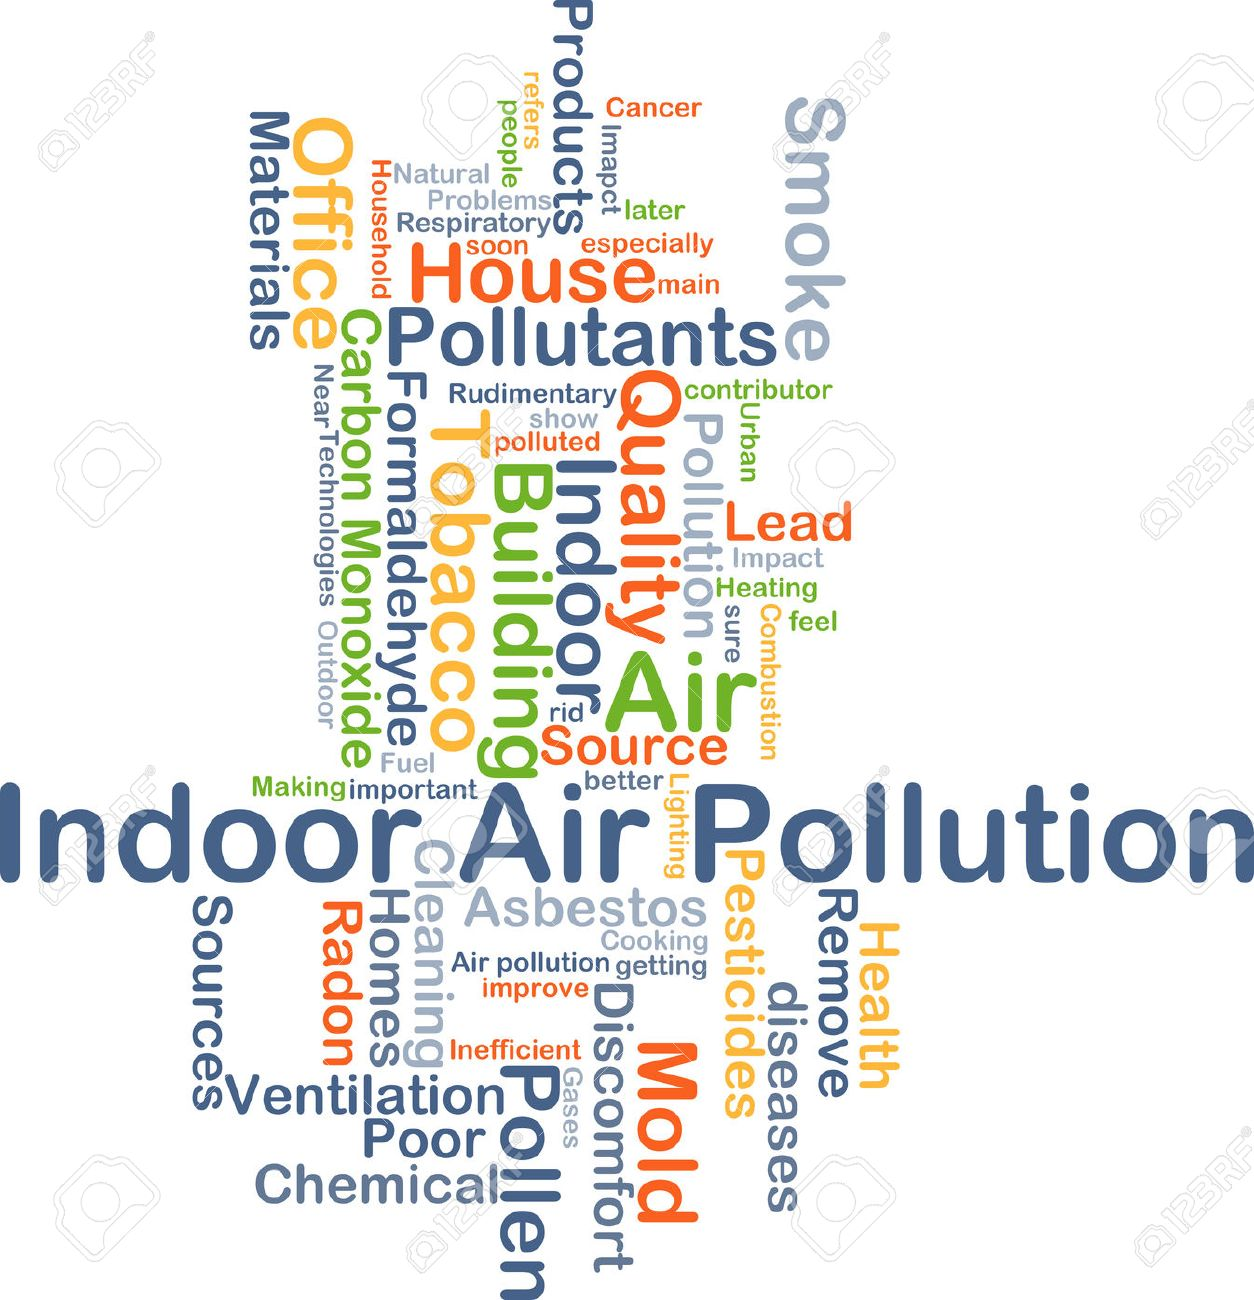 Background Concept Wordcloud Illustration Of Indoor Air Pollution Stock  Photo, Picture And Royalty Free Image. Image 45583711.